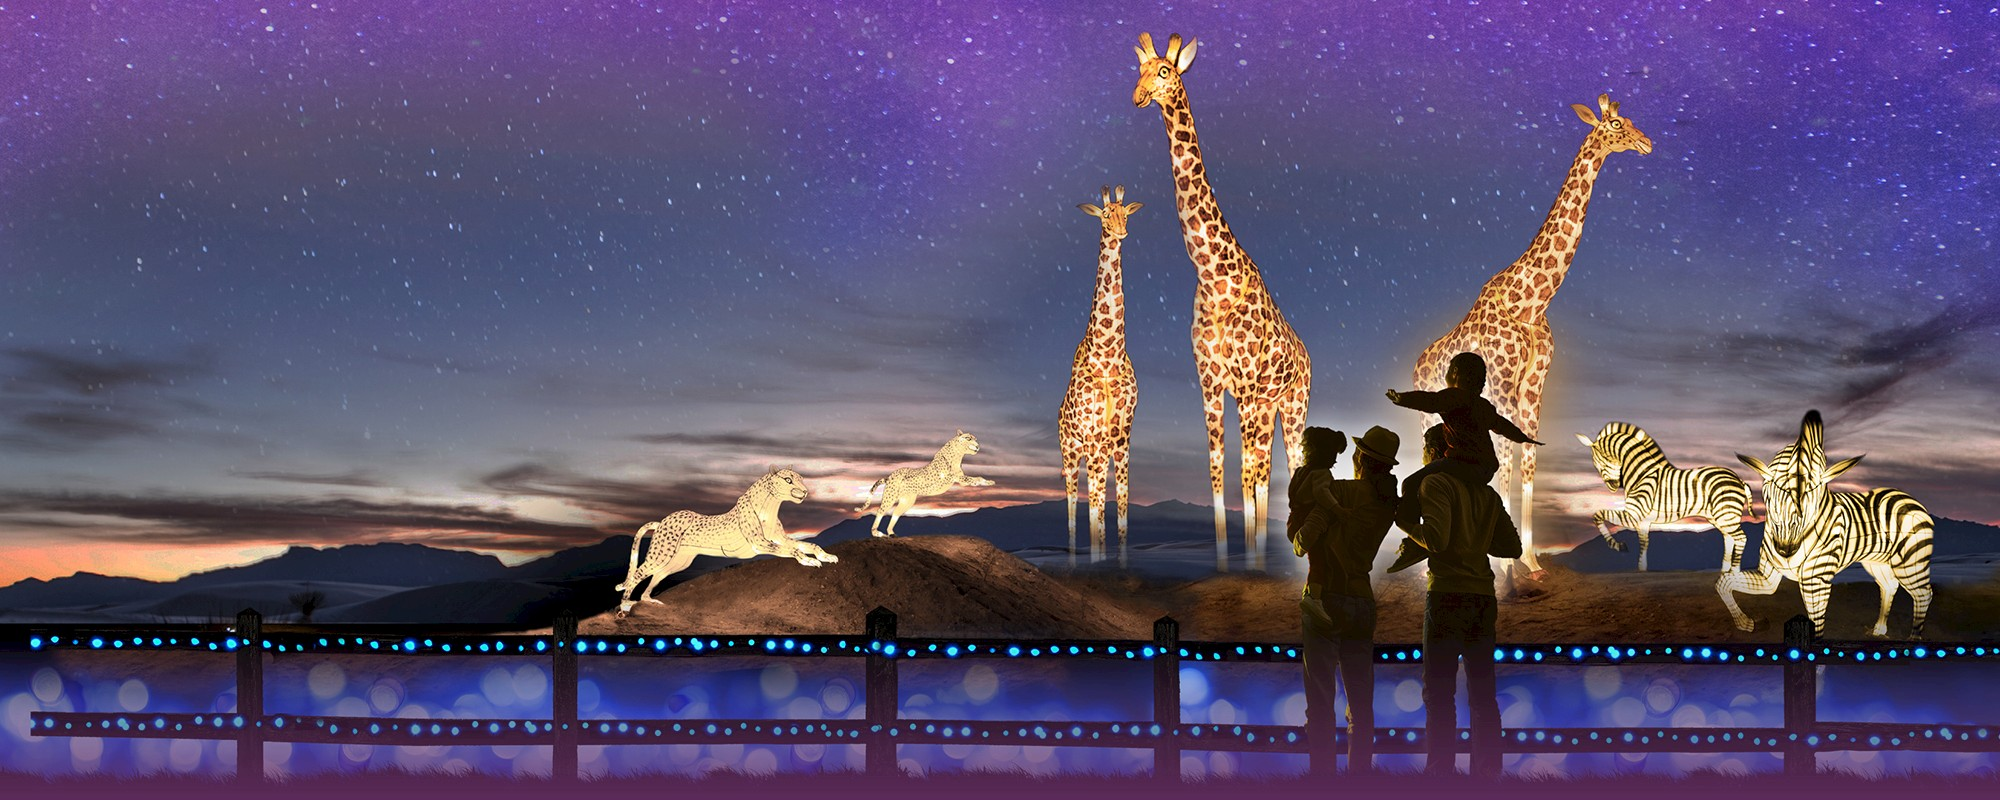 WildLights | The Living Desert Zoo and Gardens